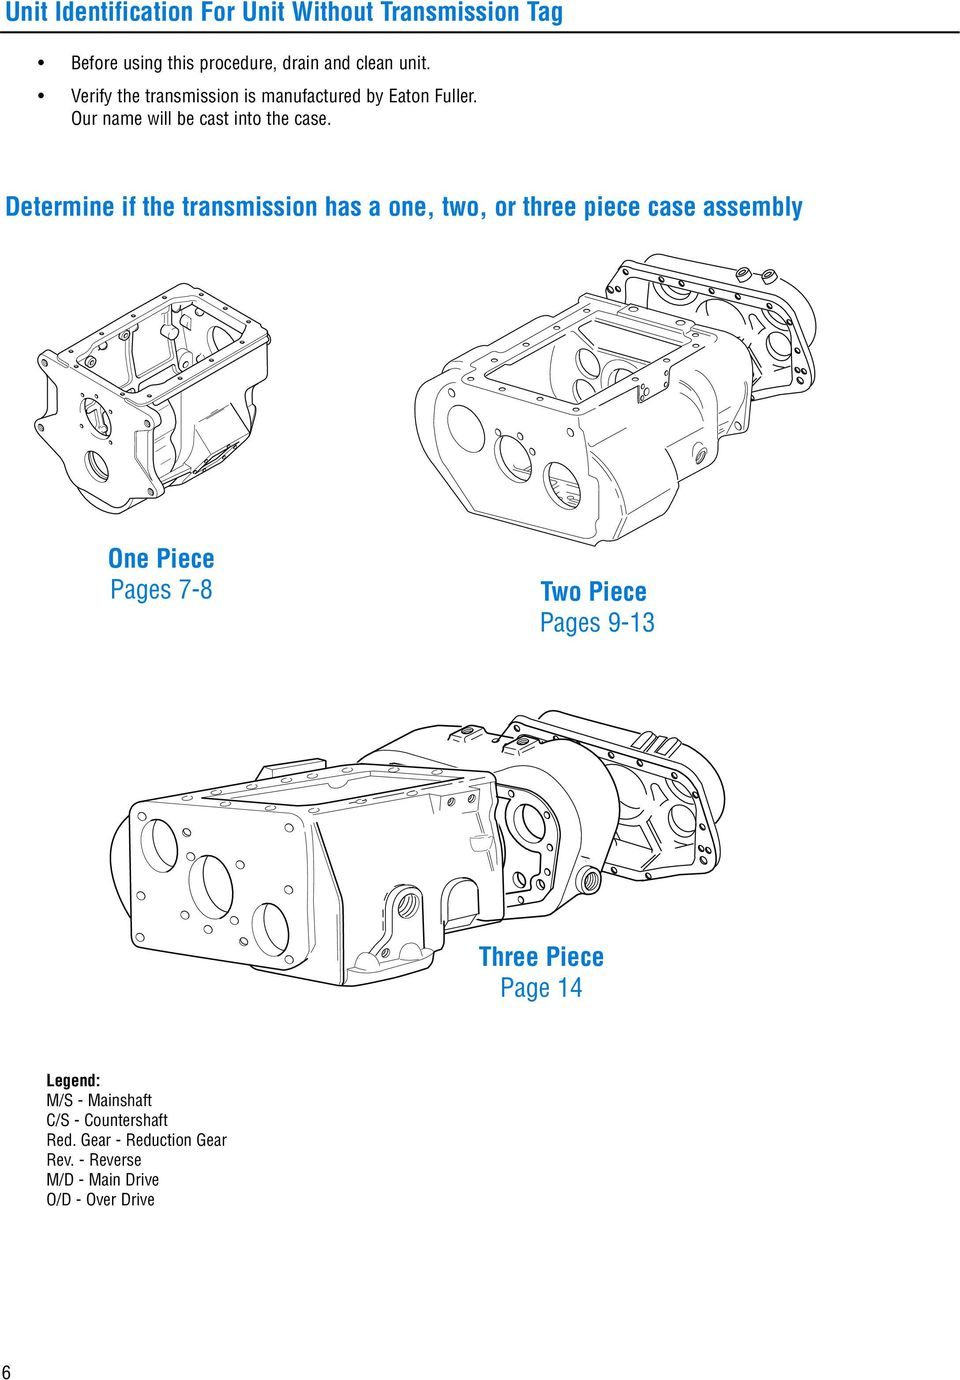 Determine if the transmission has a one, two, or three piece case assembly One Piece Pages 7-8 Two Piece Pages